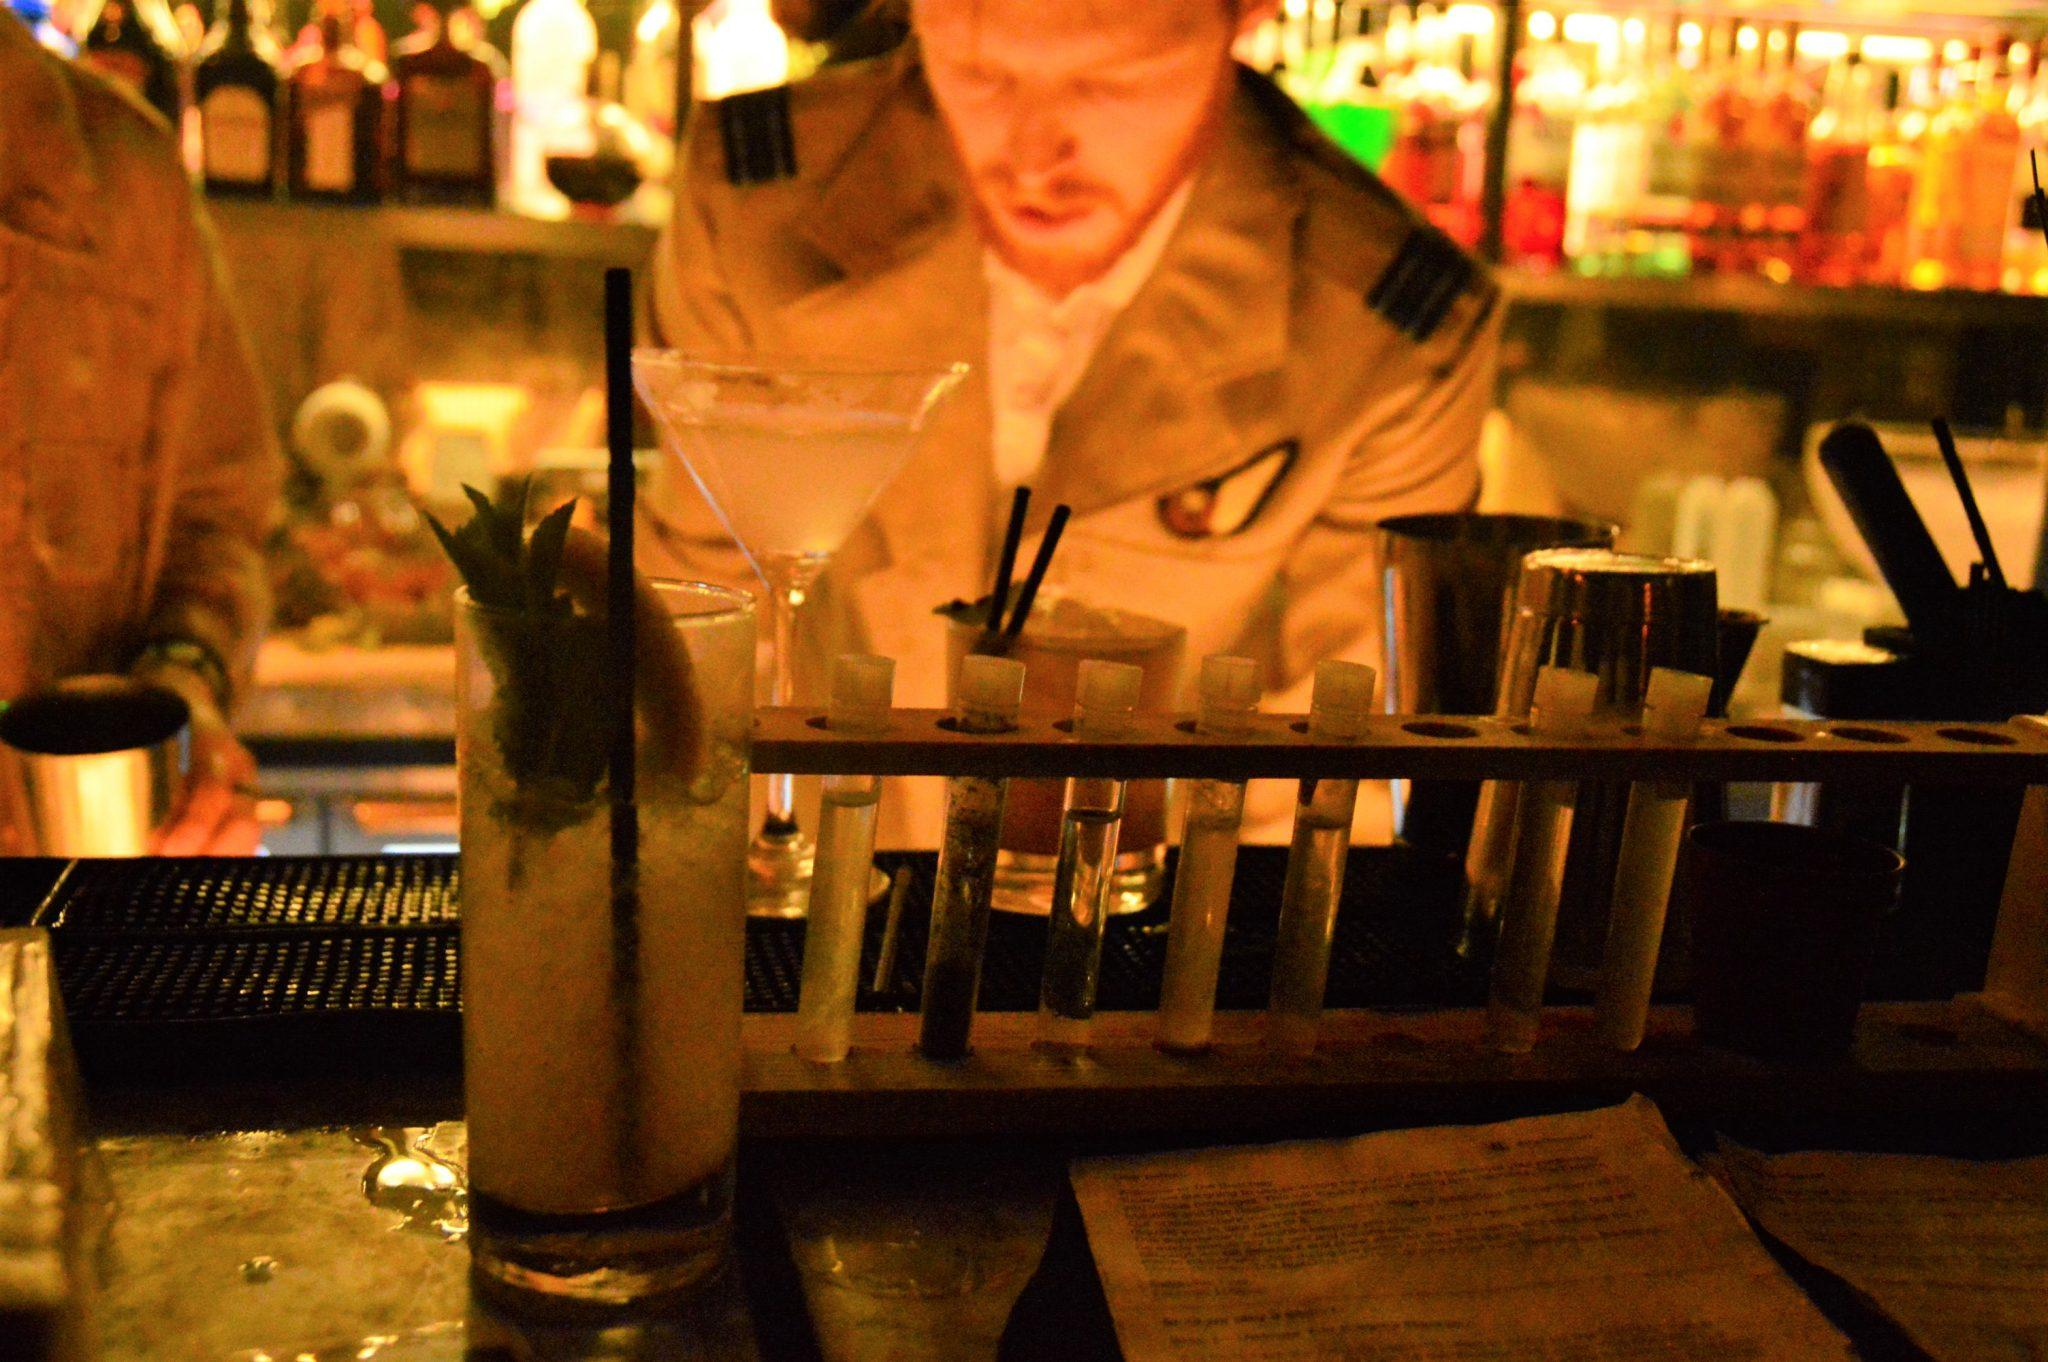 drinks in test tubes lined up at a bar